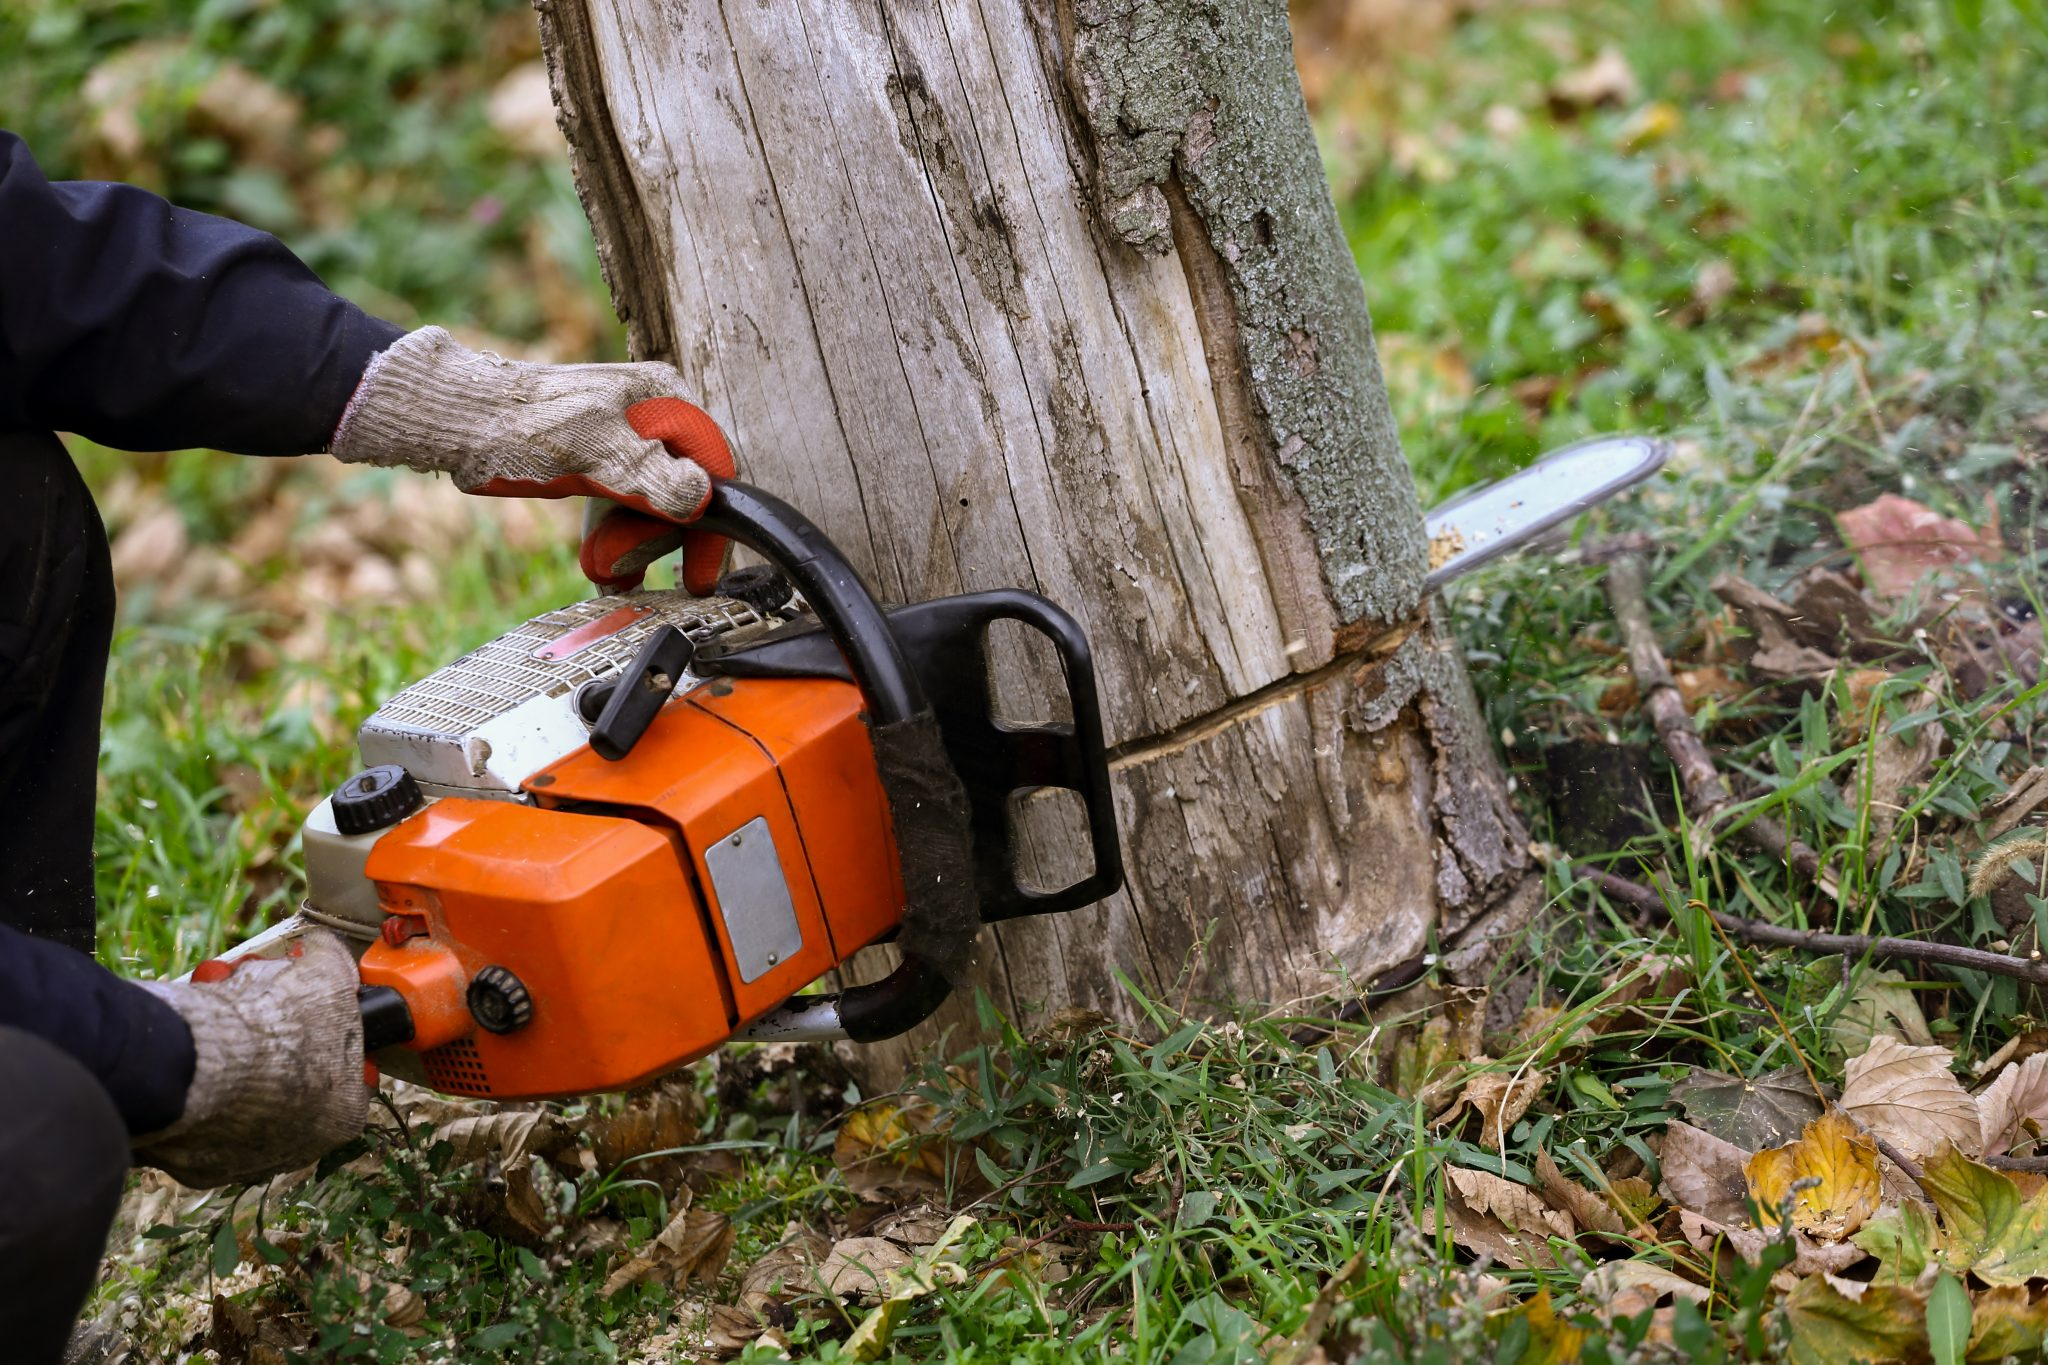 using chainsaw to cut down tree